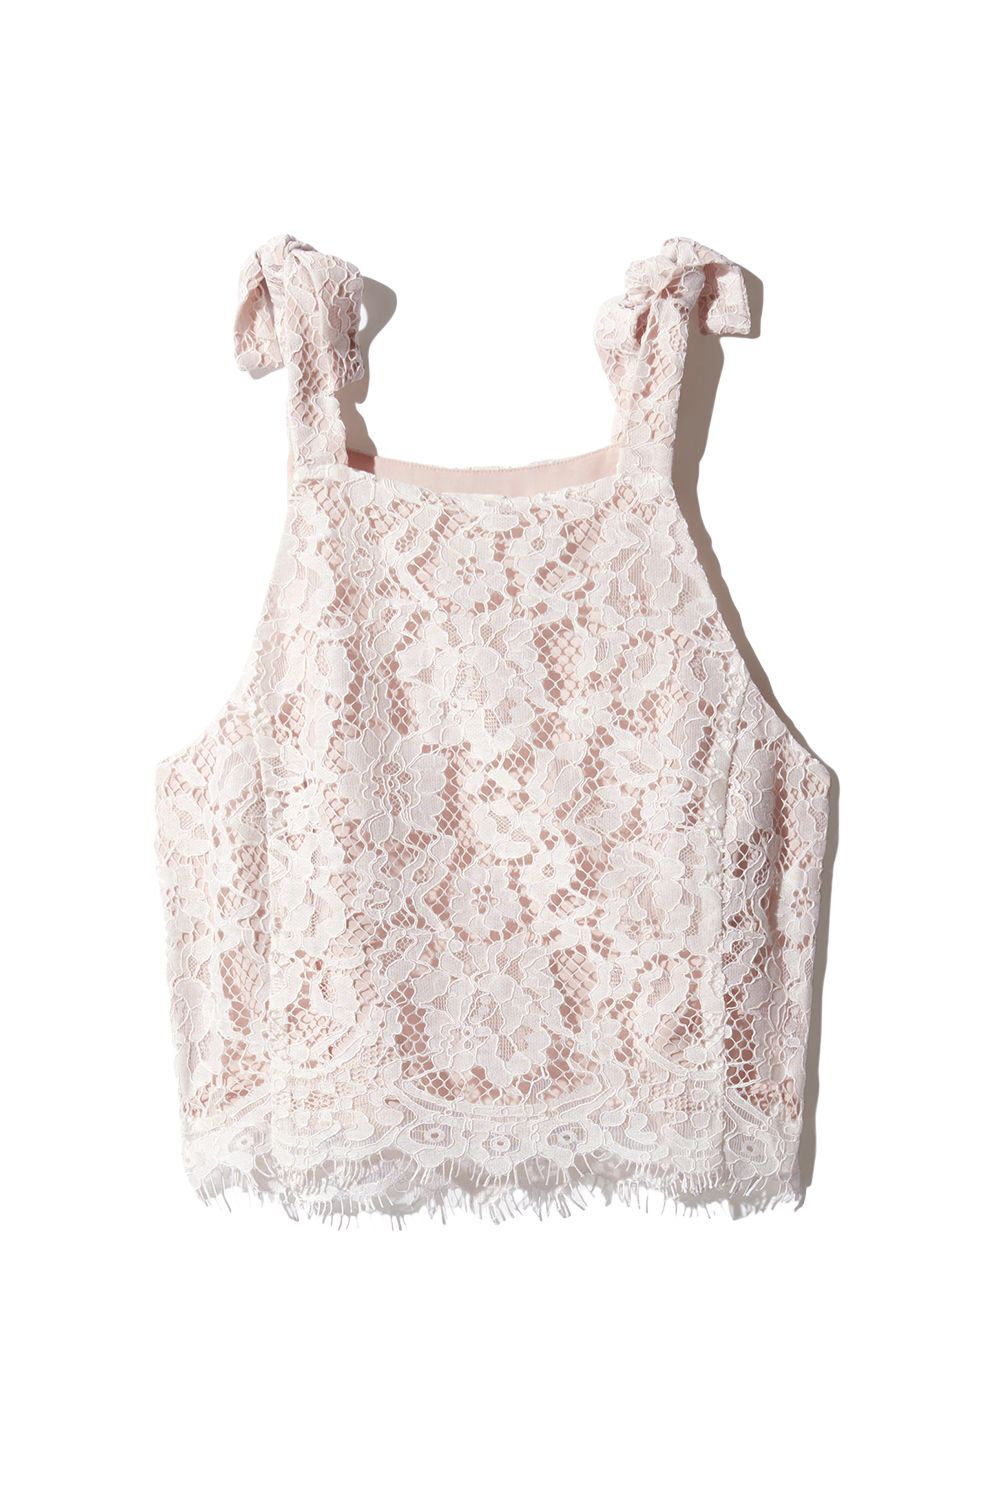 """<p>Like they googled """"What do millennials like?"""" and mashed the top results (pink, lace, shoulder ties) together.</p><p>Aritzia, $60; <a href=""""http://us.aritzia.com/product/devere-blouse/62855.html?dwvar_62855_color=6824"""" target=""""_blank"""" data-tracking-id=""""recirc-text-link"""">aritzia.com</a>.</p>"""